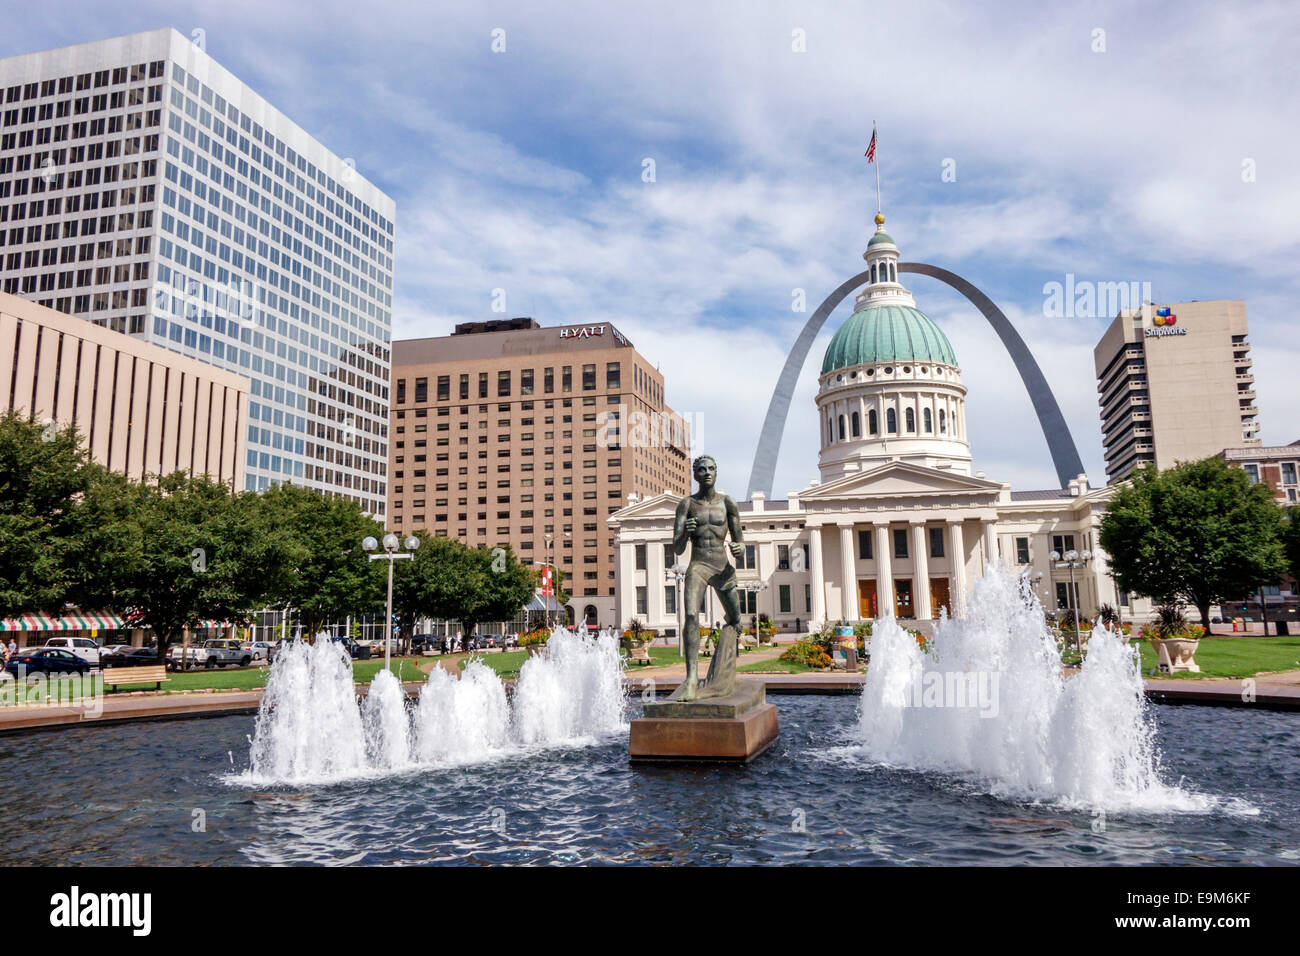 Missouri, Midwest, Saint St. Louis, Old Courthouse, Court House, Gateway Arch, memorial, catenary, fountain, Kiener Stock Photo